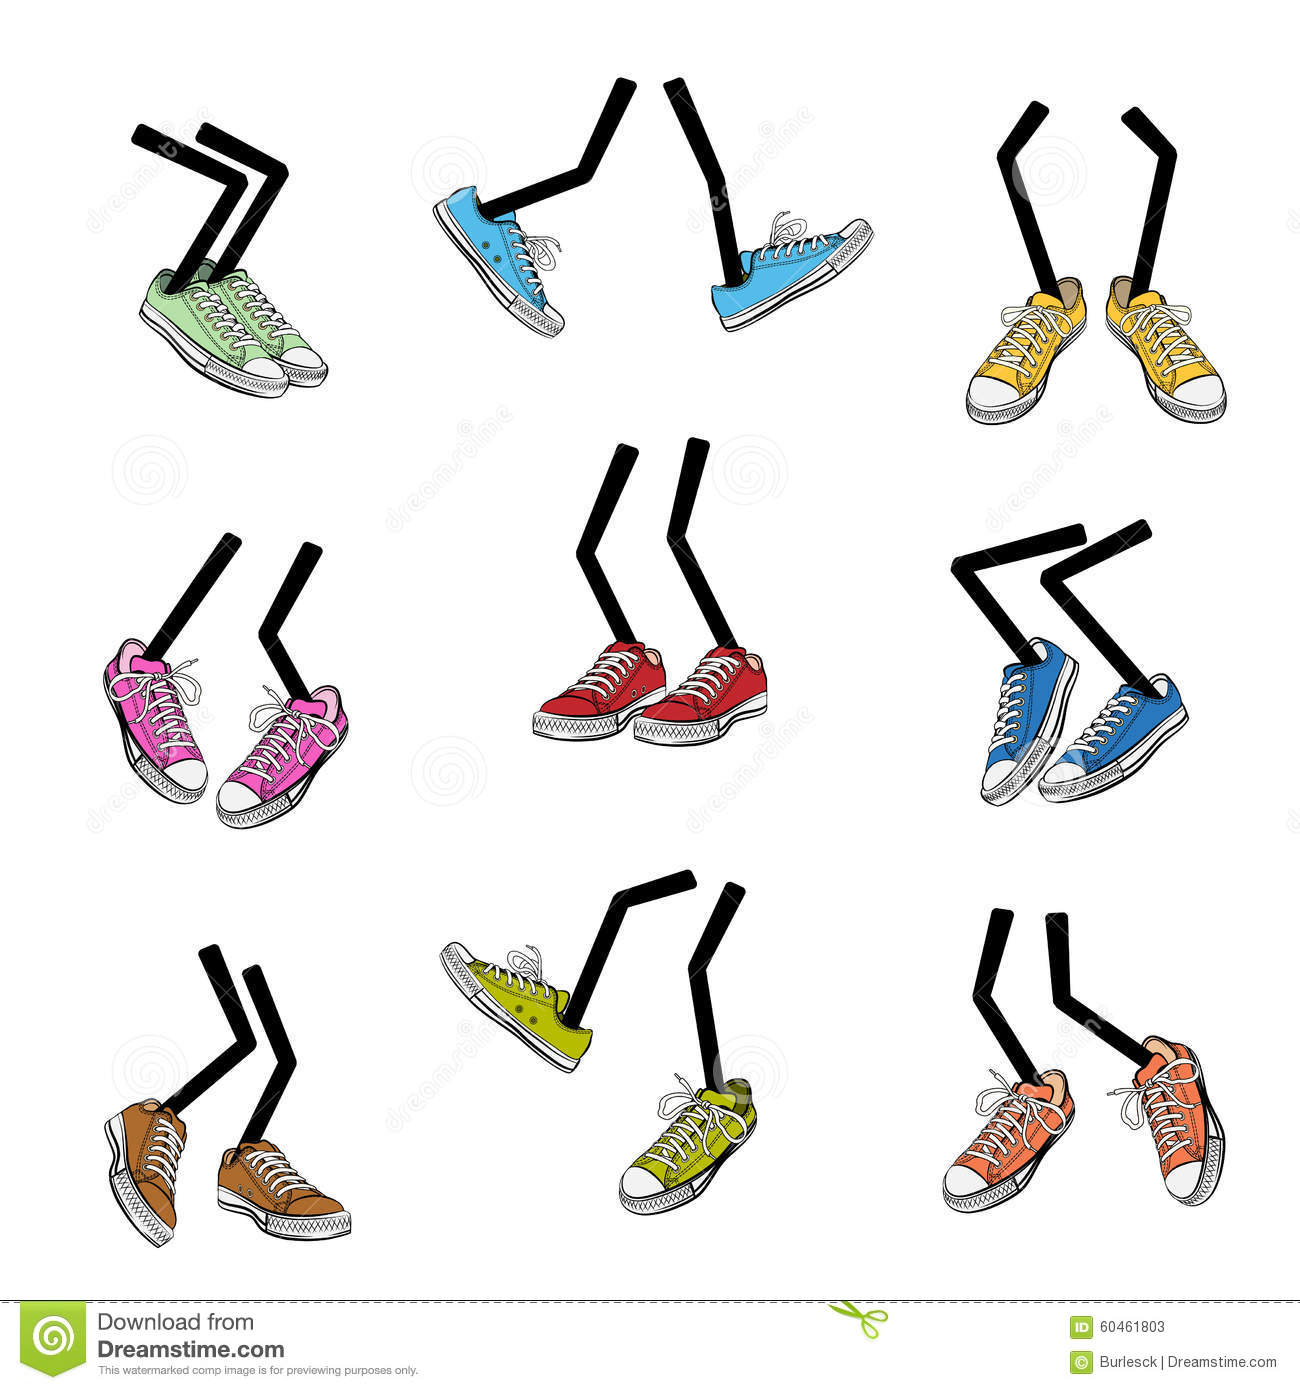 How To Draw Anpanman additionally 1255  Big Rainbow Dots Scalloped Borders 1255 furthermore Baby Boy Images Clip Art Clipartfest moreover Dance as well Aplausos. on cartoon smiley feet